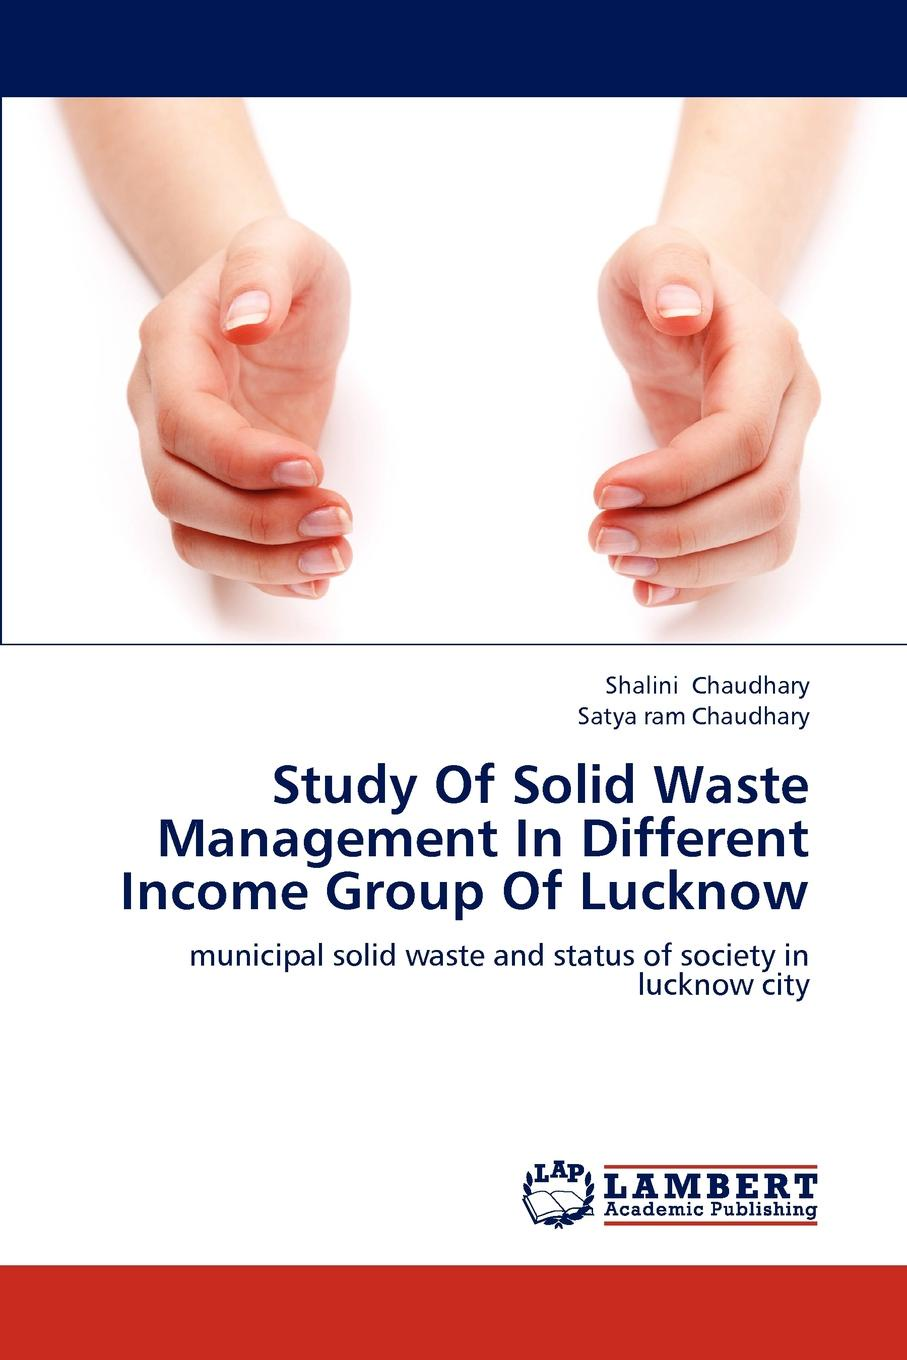 Shalini Chaudhary, Satya ram Chaudhary Study Of Solid Waste Management In Different Income Group Of Lucknow kevin henke arsenic environmental chemistry health threats and waste treatment